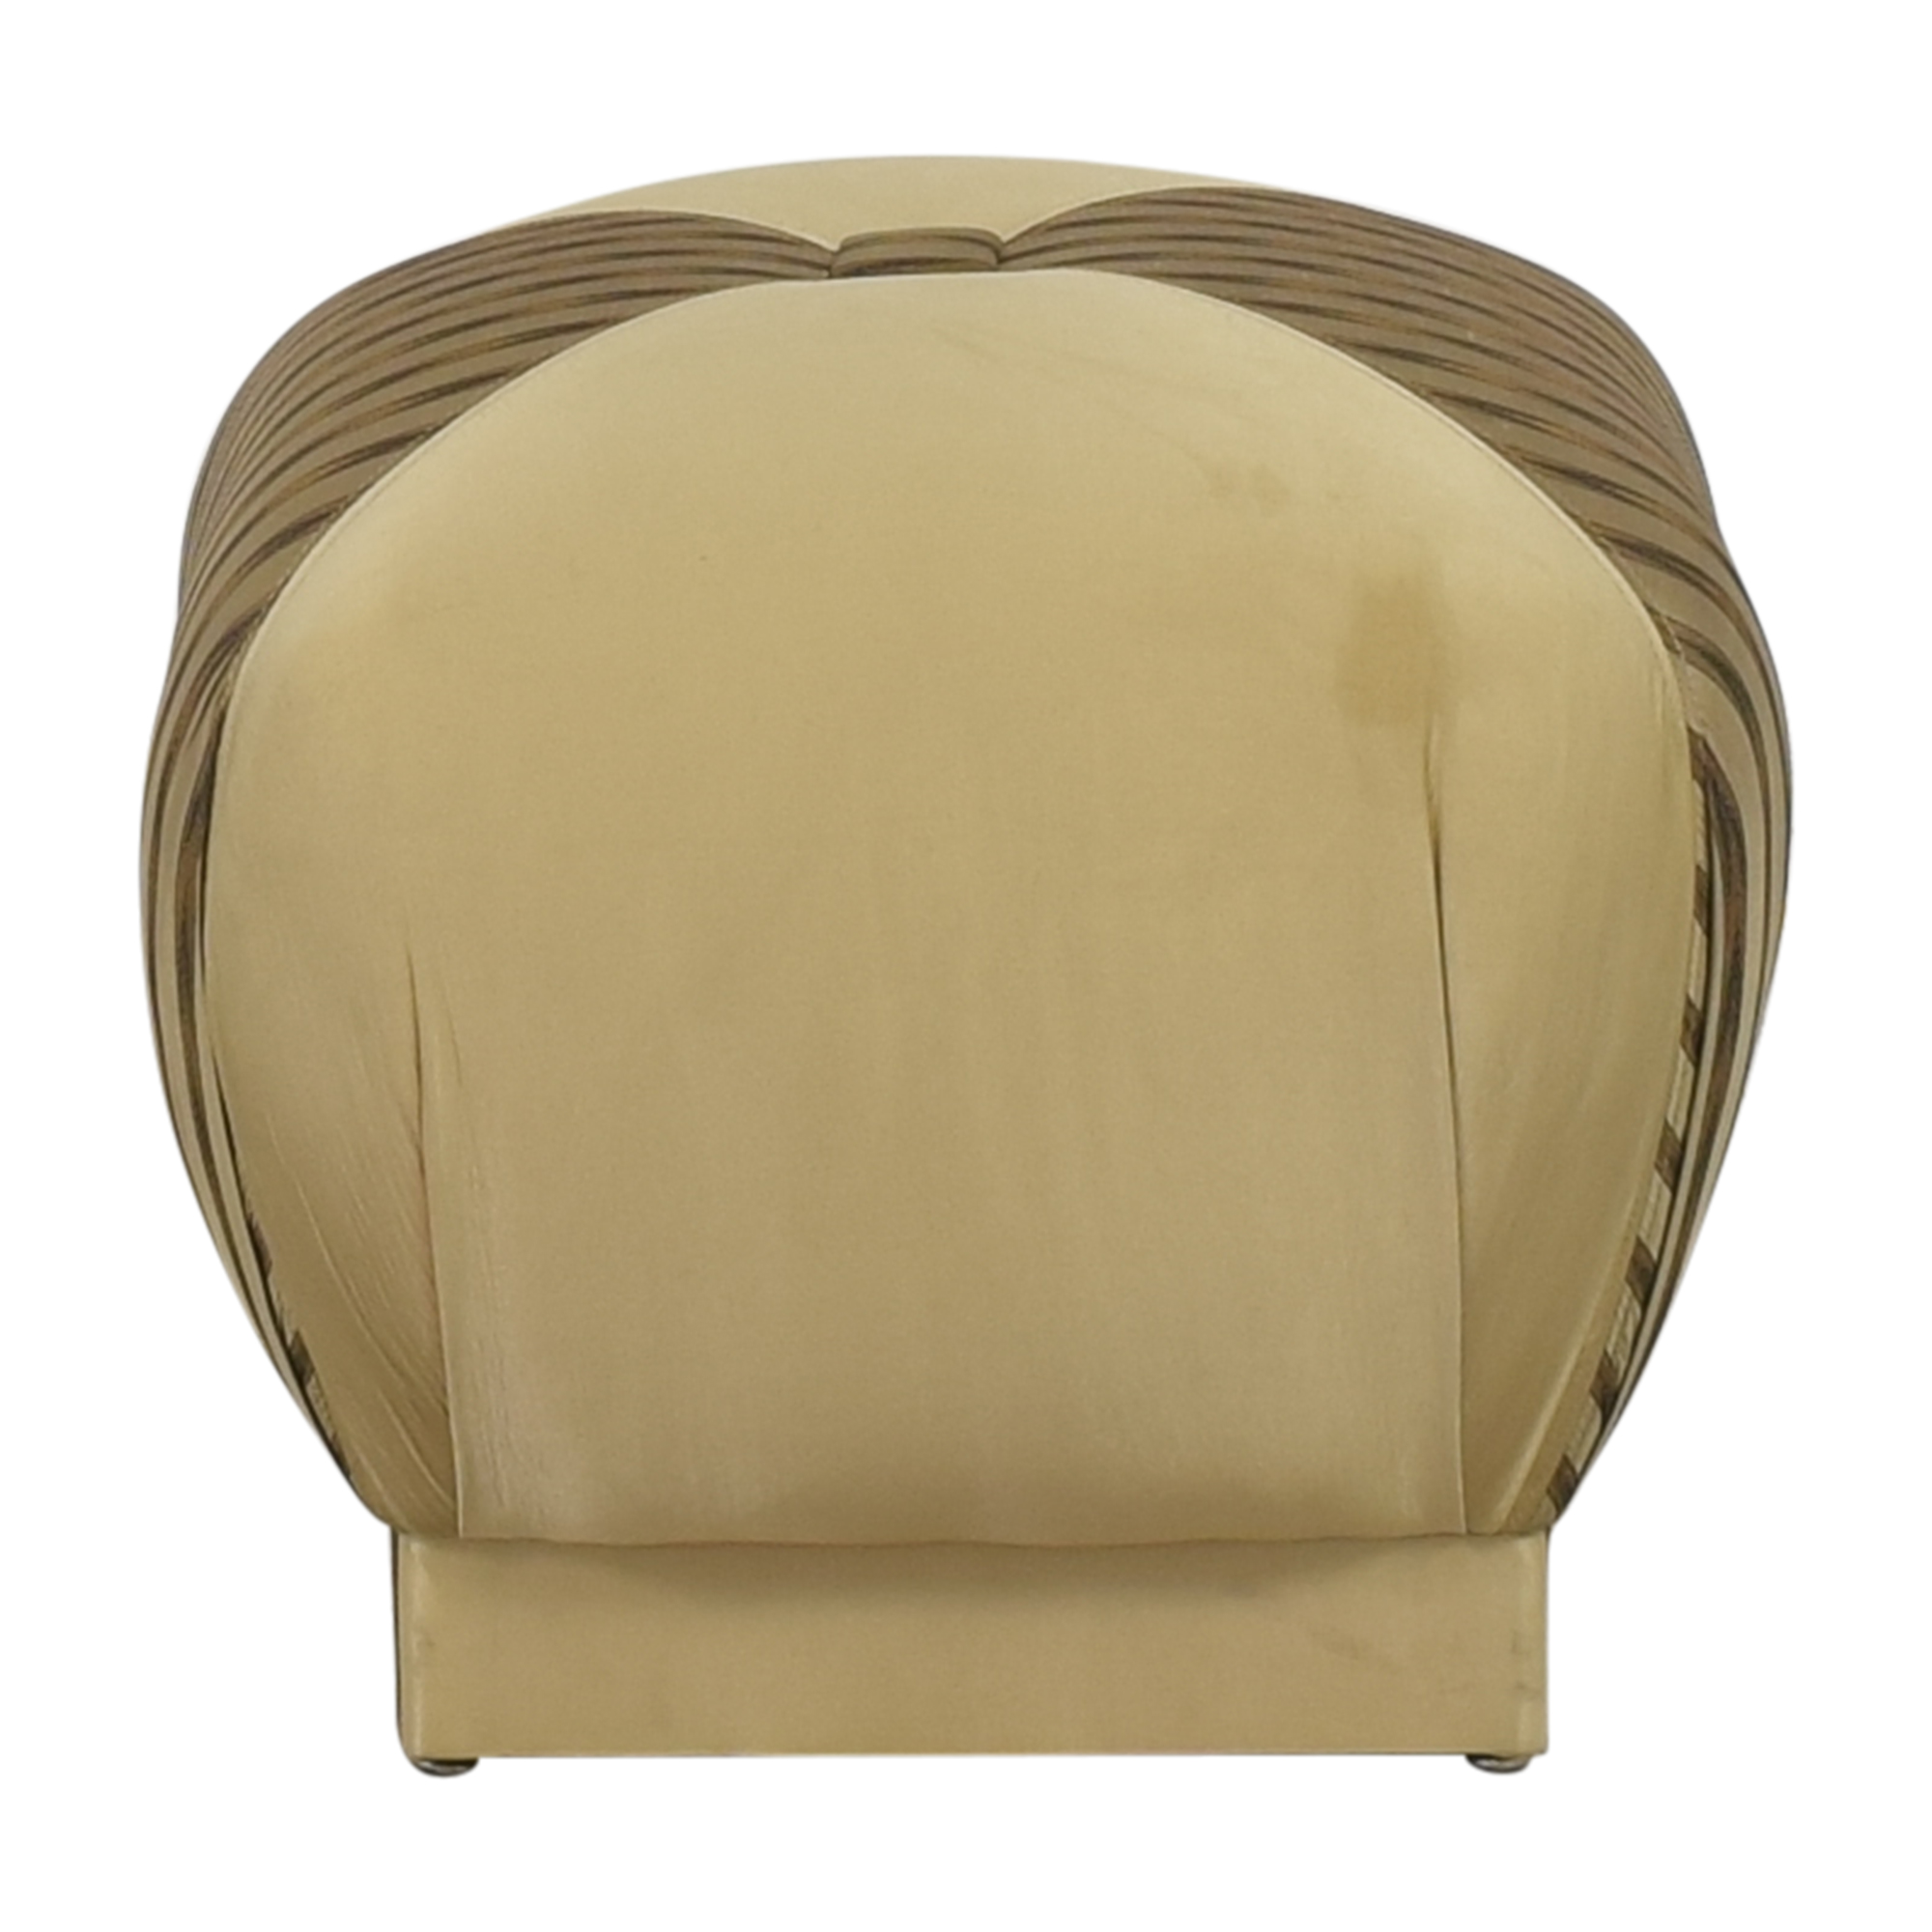 Marge Carson Marge Carson Pouf used